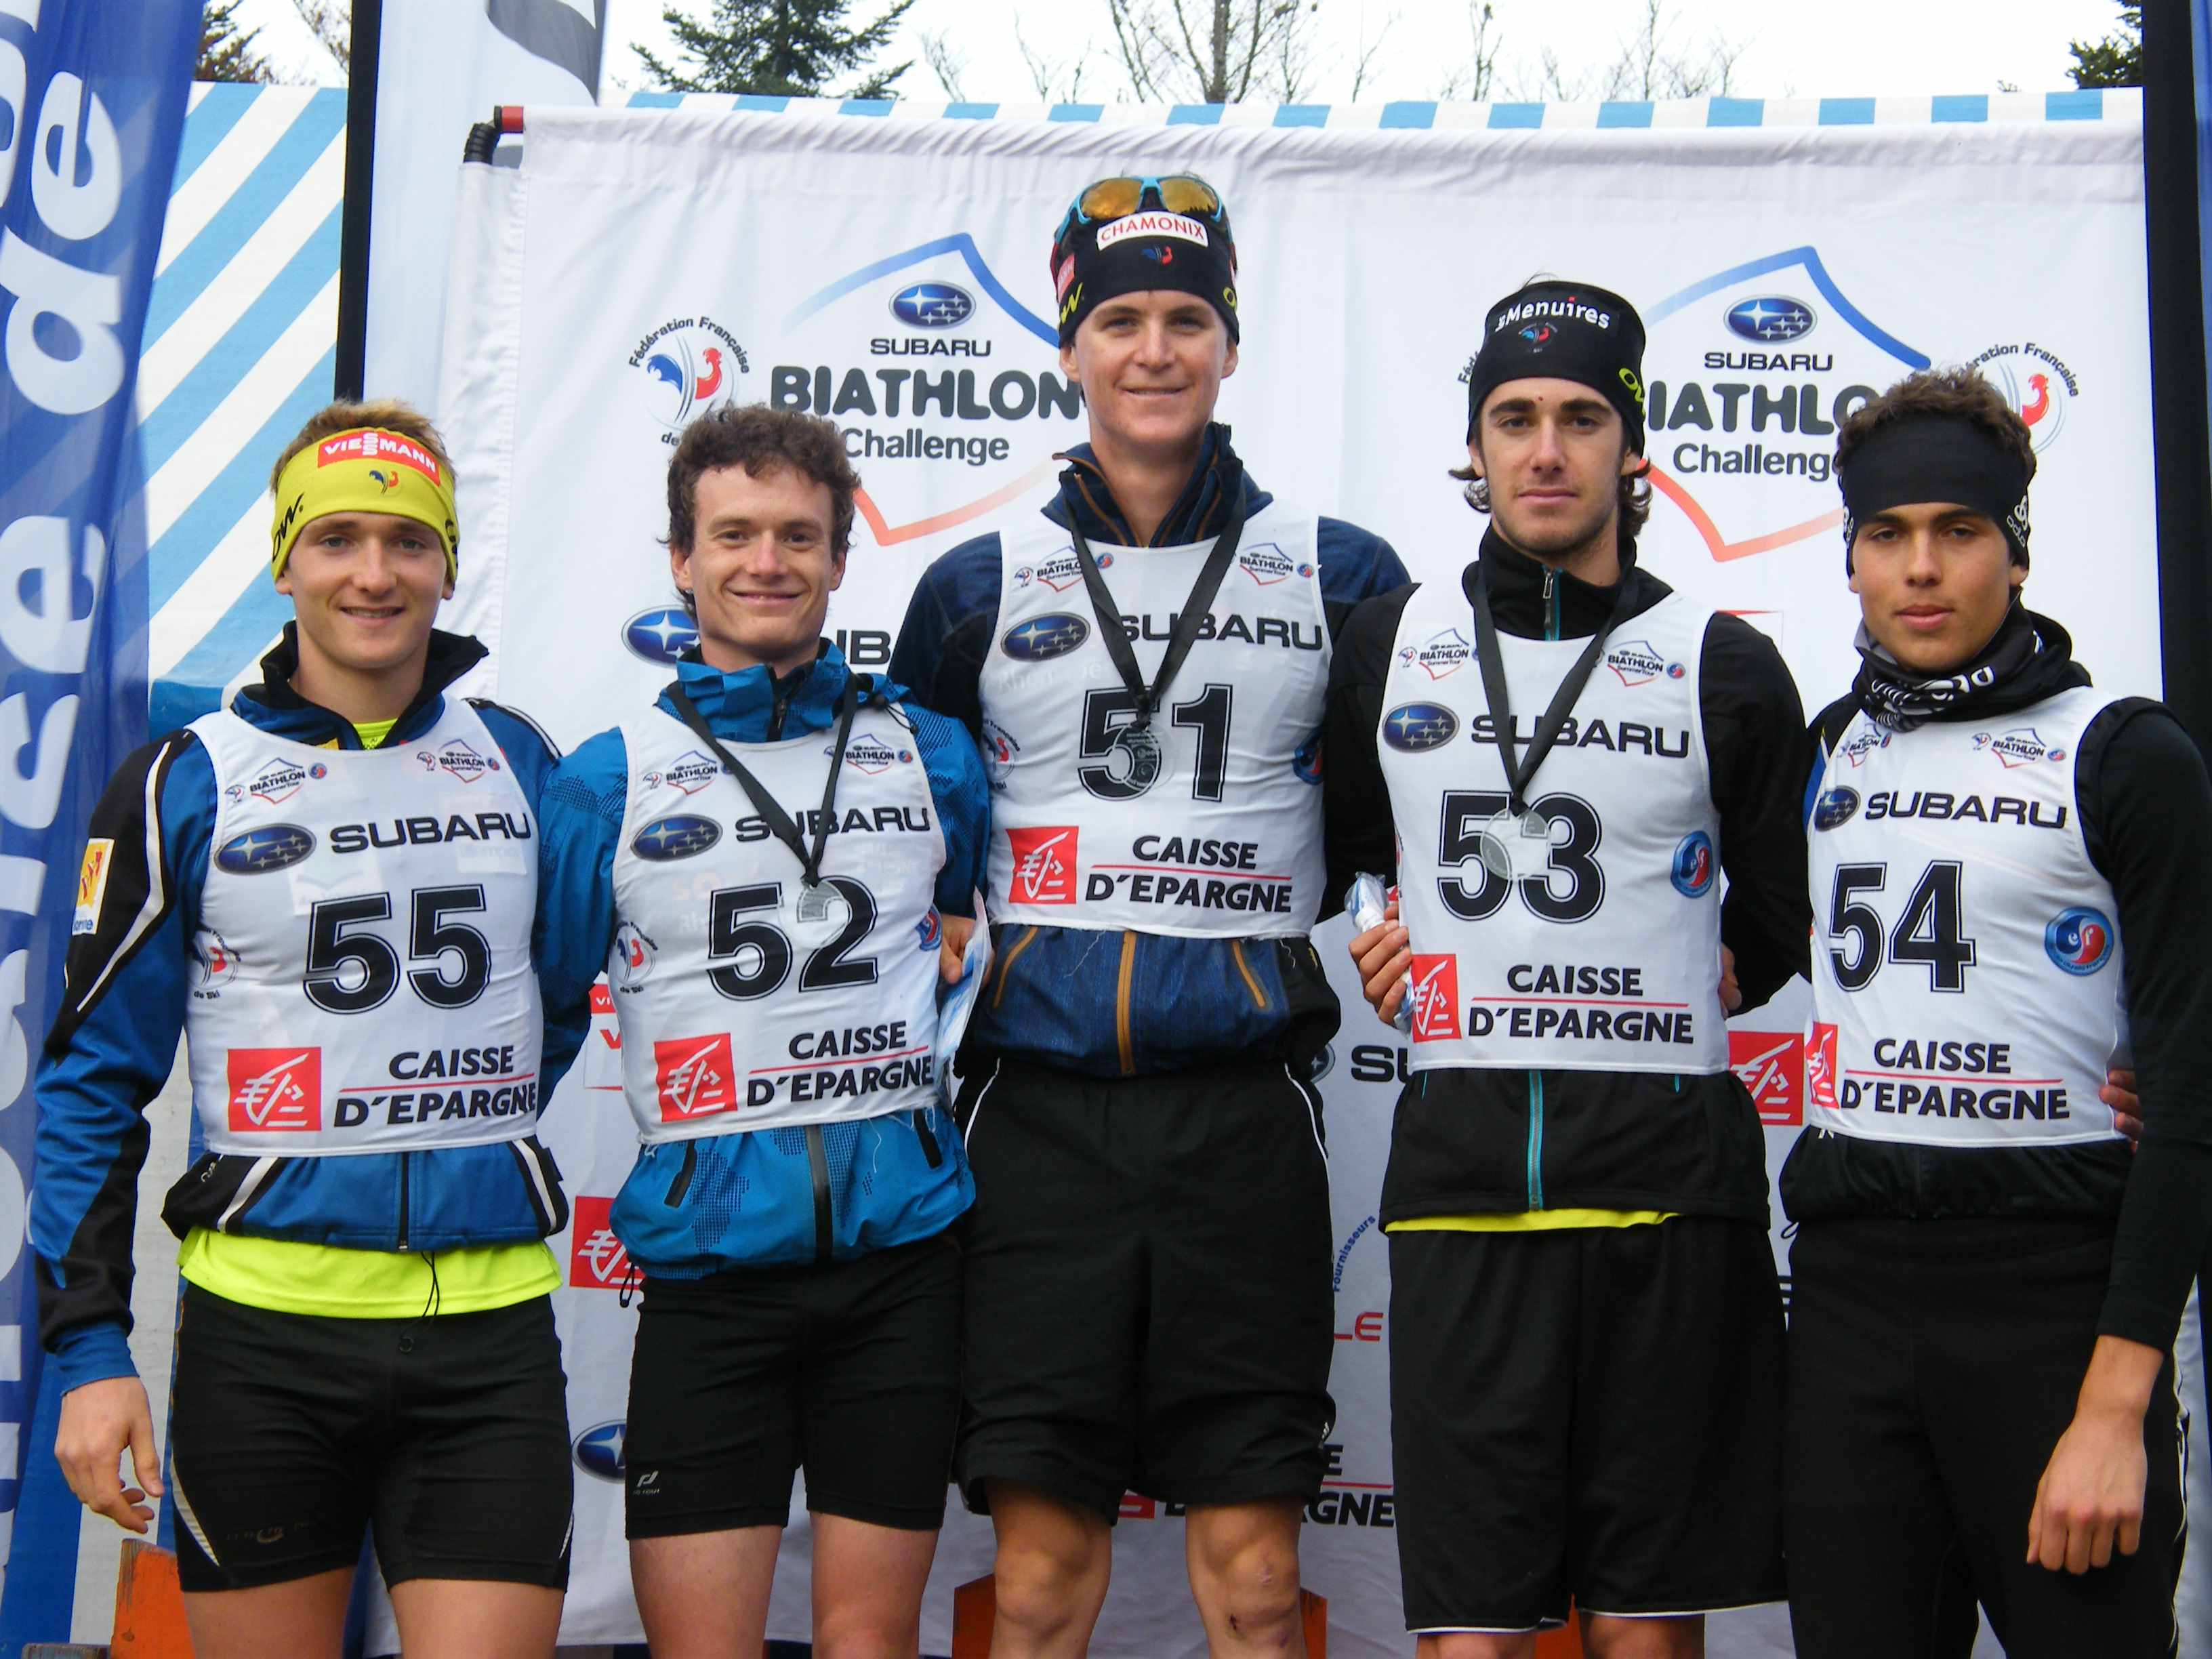 Le podium juniors hommes